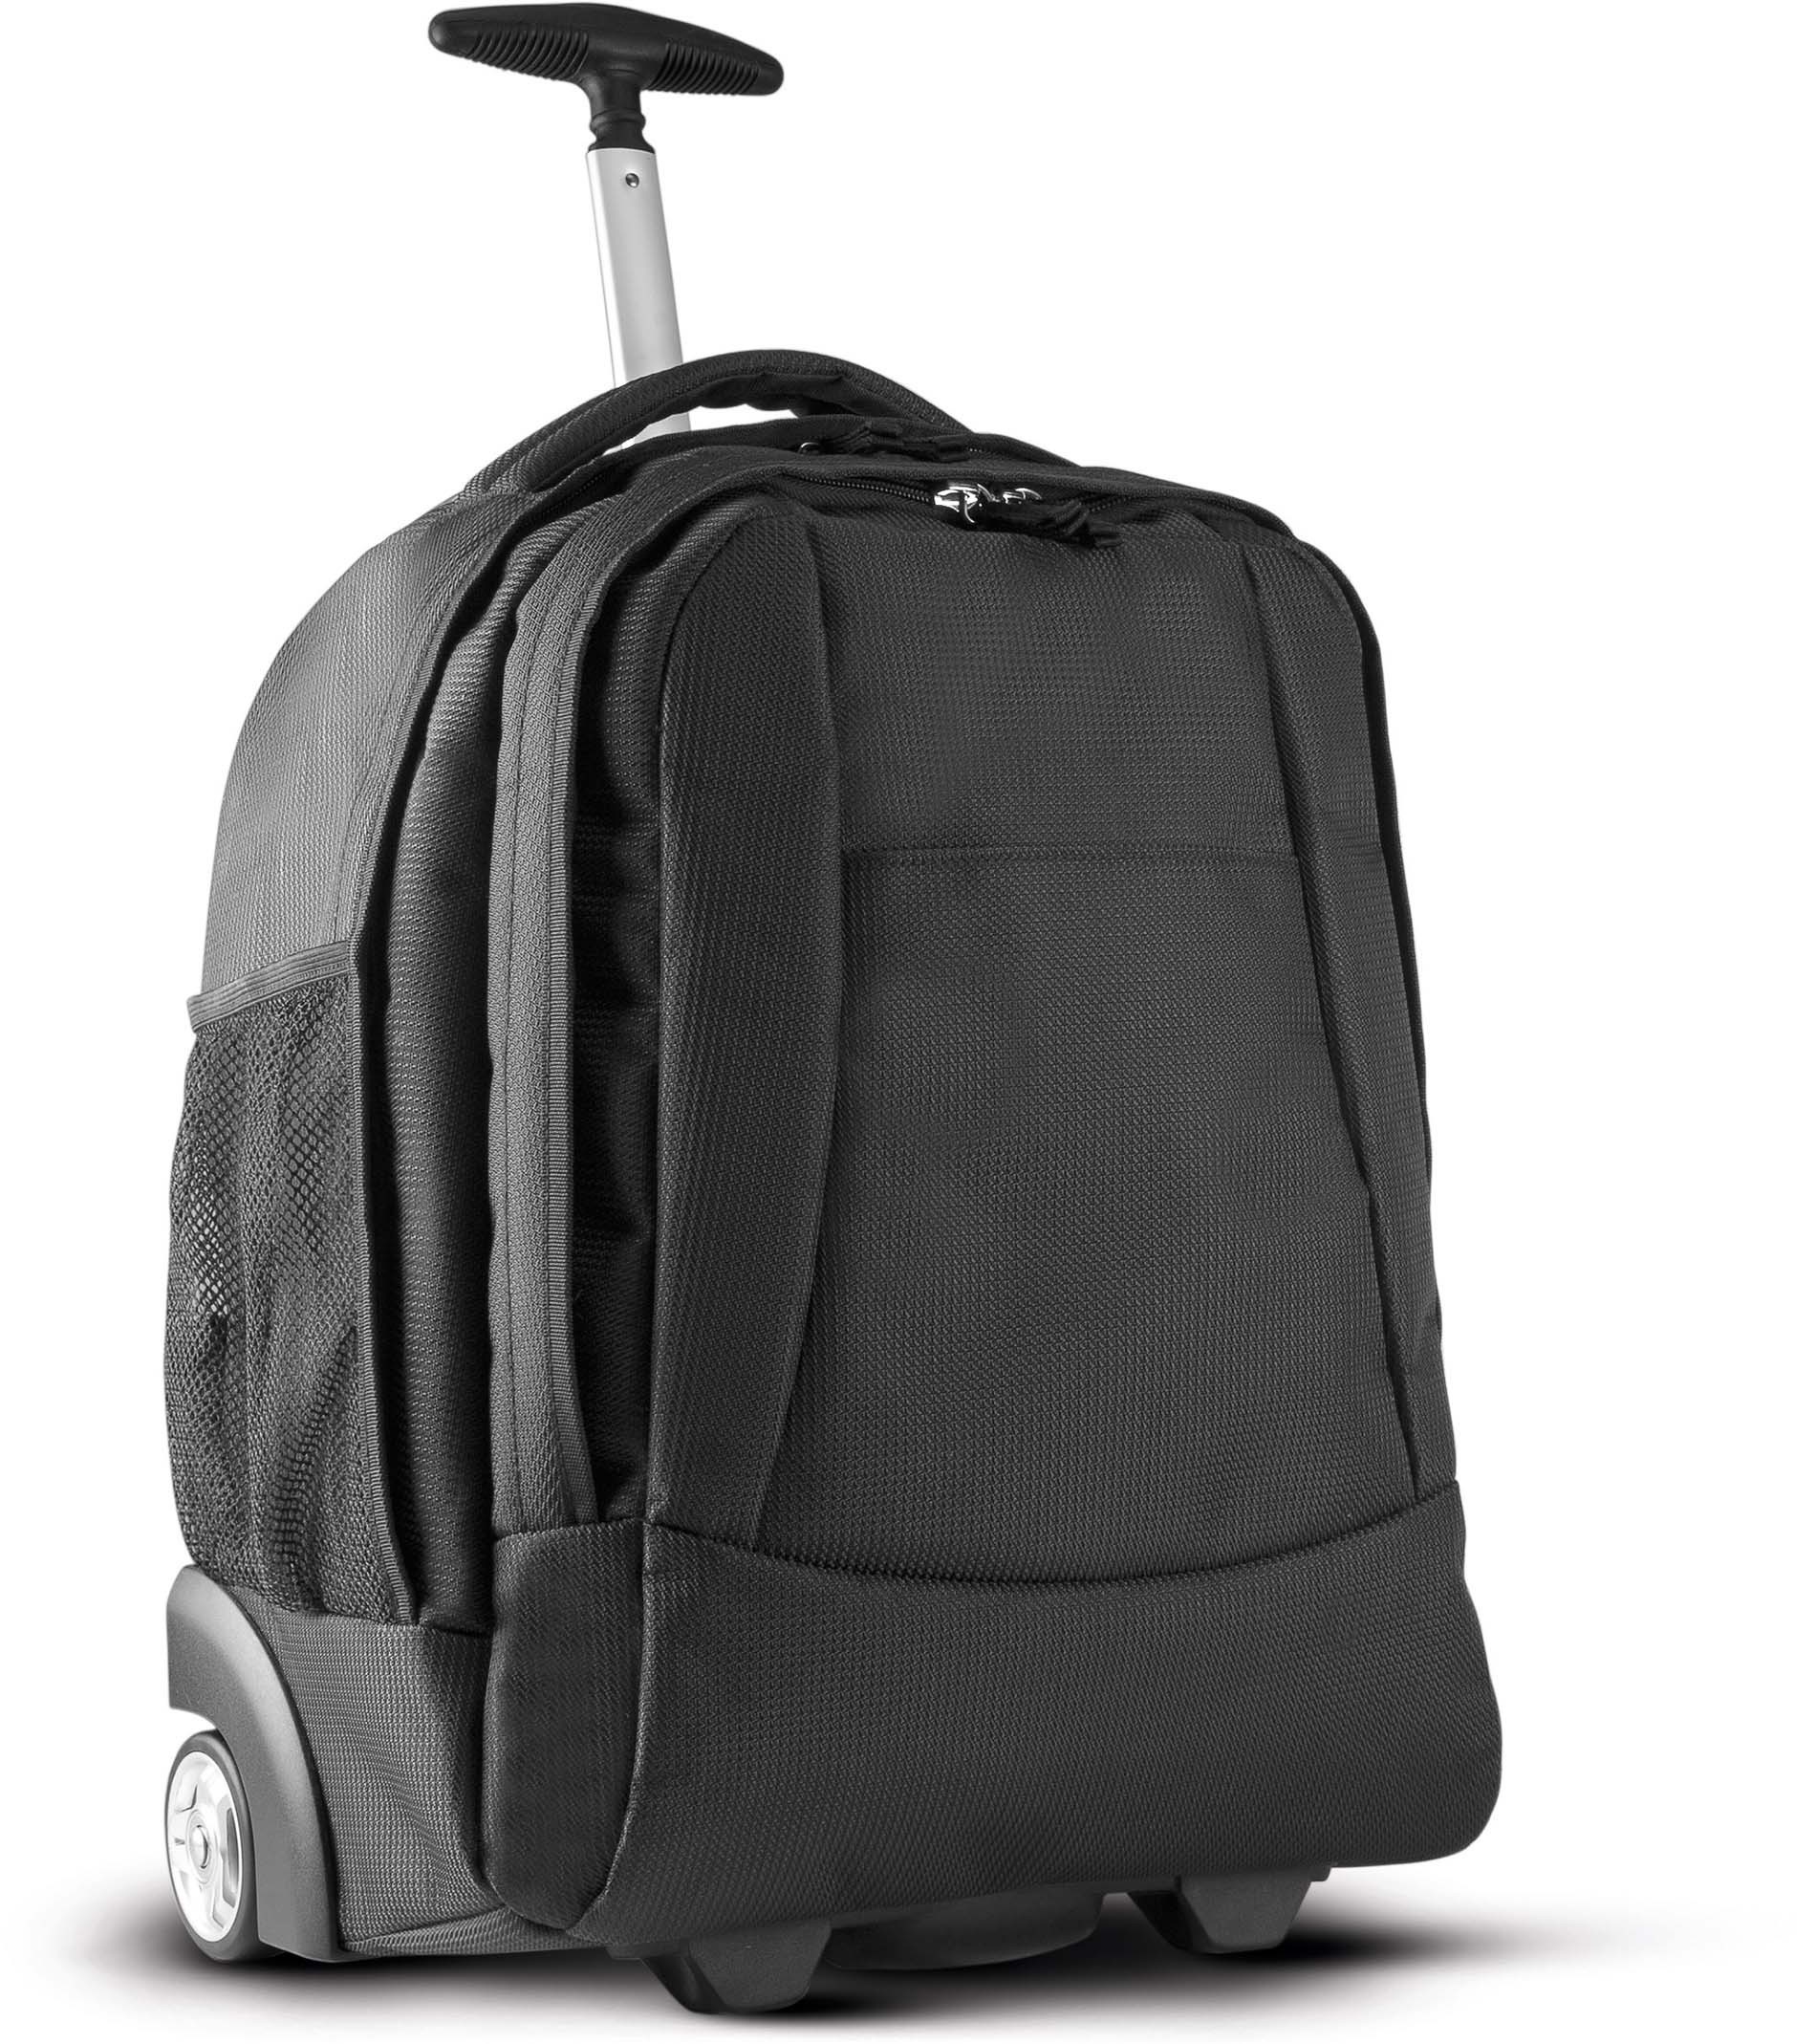 sac sac dos trolley taille cabine valises trolleys accessoires voyages bagagerie. Black Bedroom Furniture Sets. Home Design Ideas